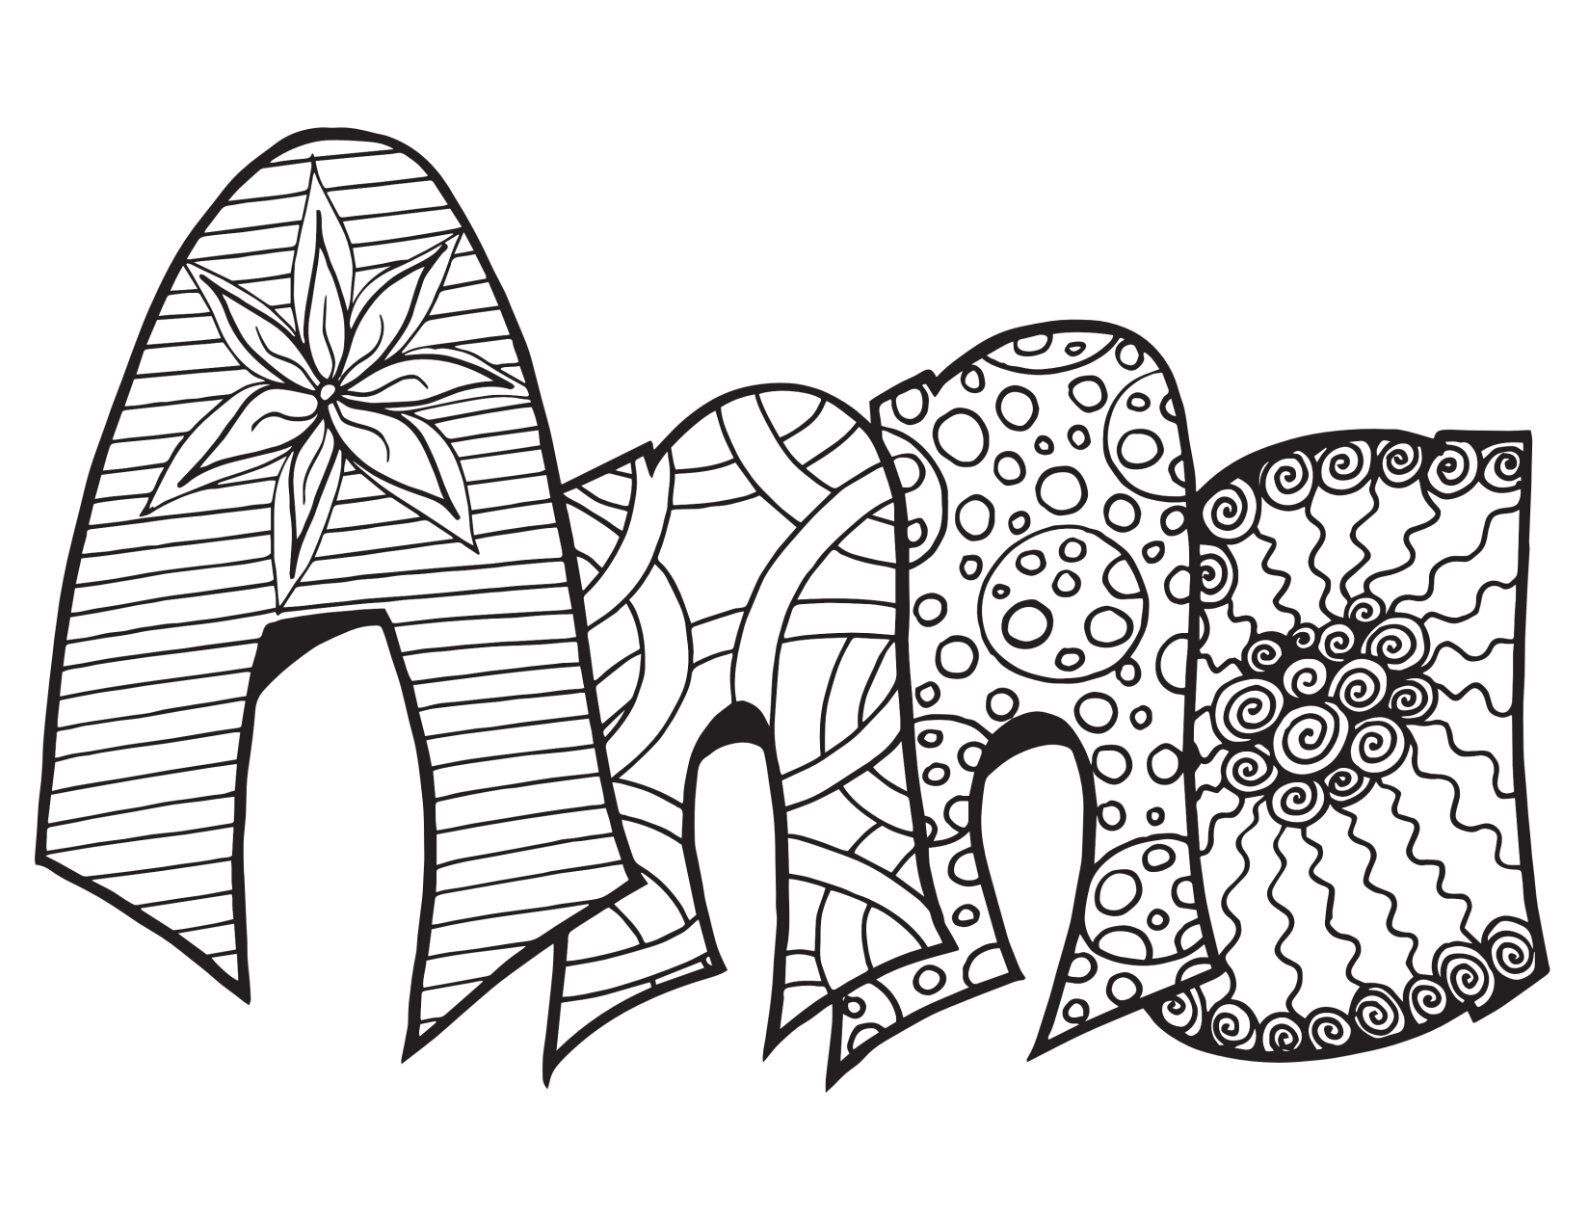 ANNA! Free Printable Coloring Page - Classic Stevie Doodle — Stevie Doodles  | Free printable coloring pages, Love coloring pages, Coloring pages